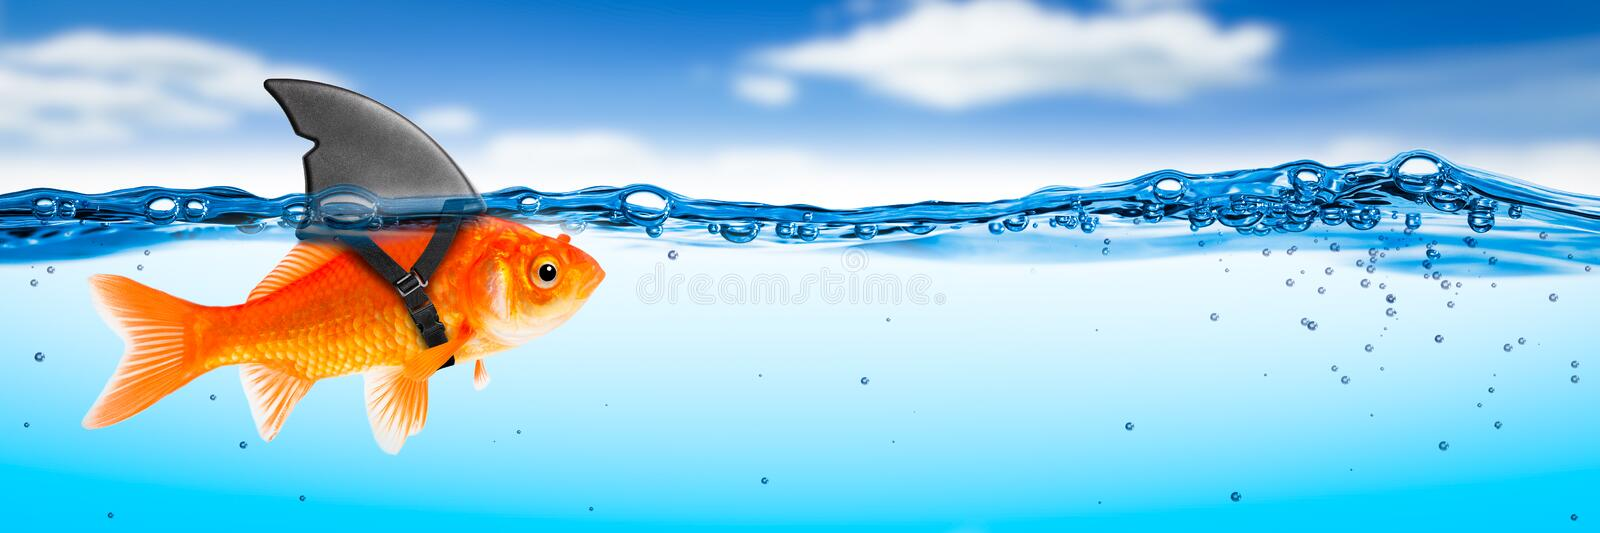 Brave Goldfish With Shark Fin Costume stock image